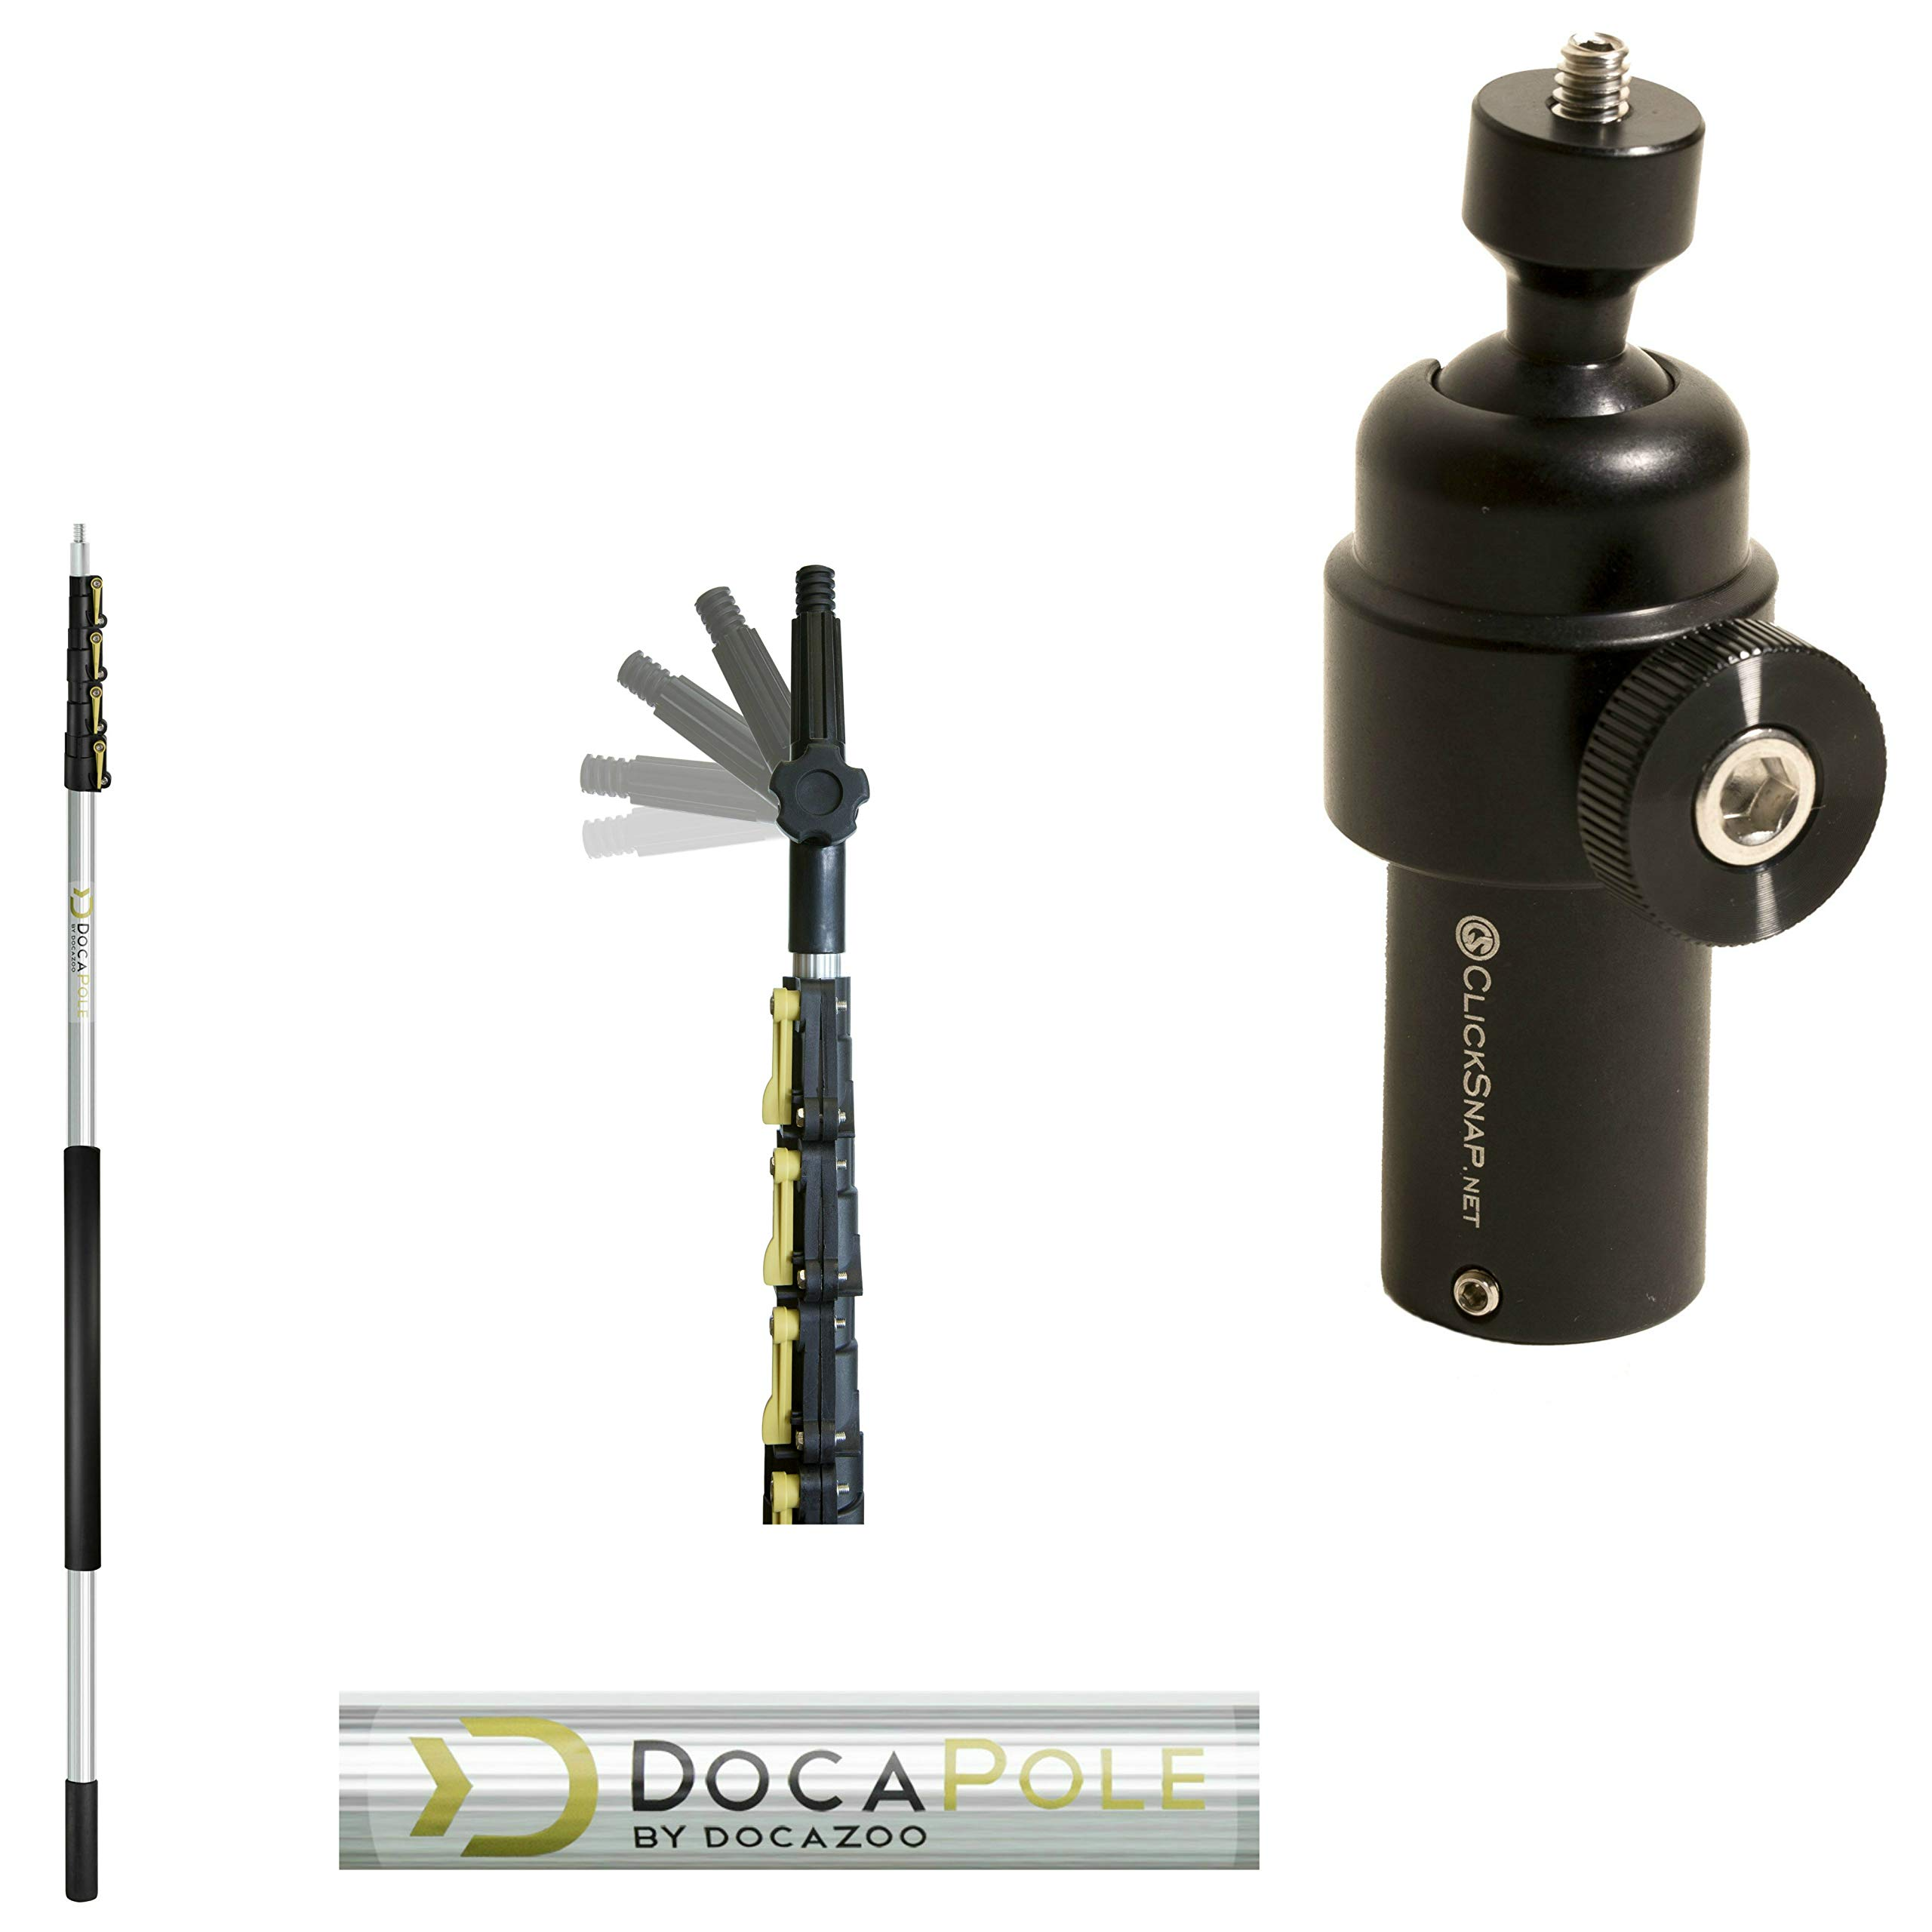 DocaPole 24 Foot Camera Pole - 6-24' Extension Pole + ClickSnap Camera Swivel Adapter for GoPro or Camera | Provides Up to 30 Feet of Reach | The Ultimate Painters Pole Camera Adapter and Camera Pole by DOCAZOO